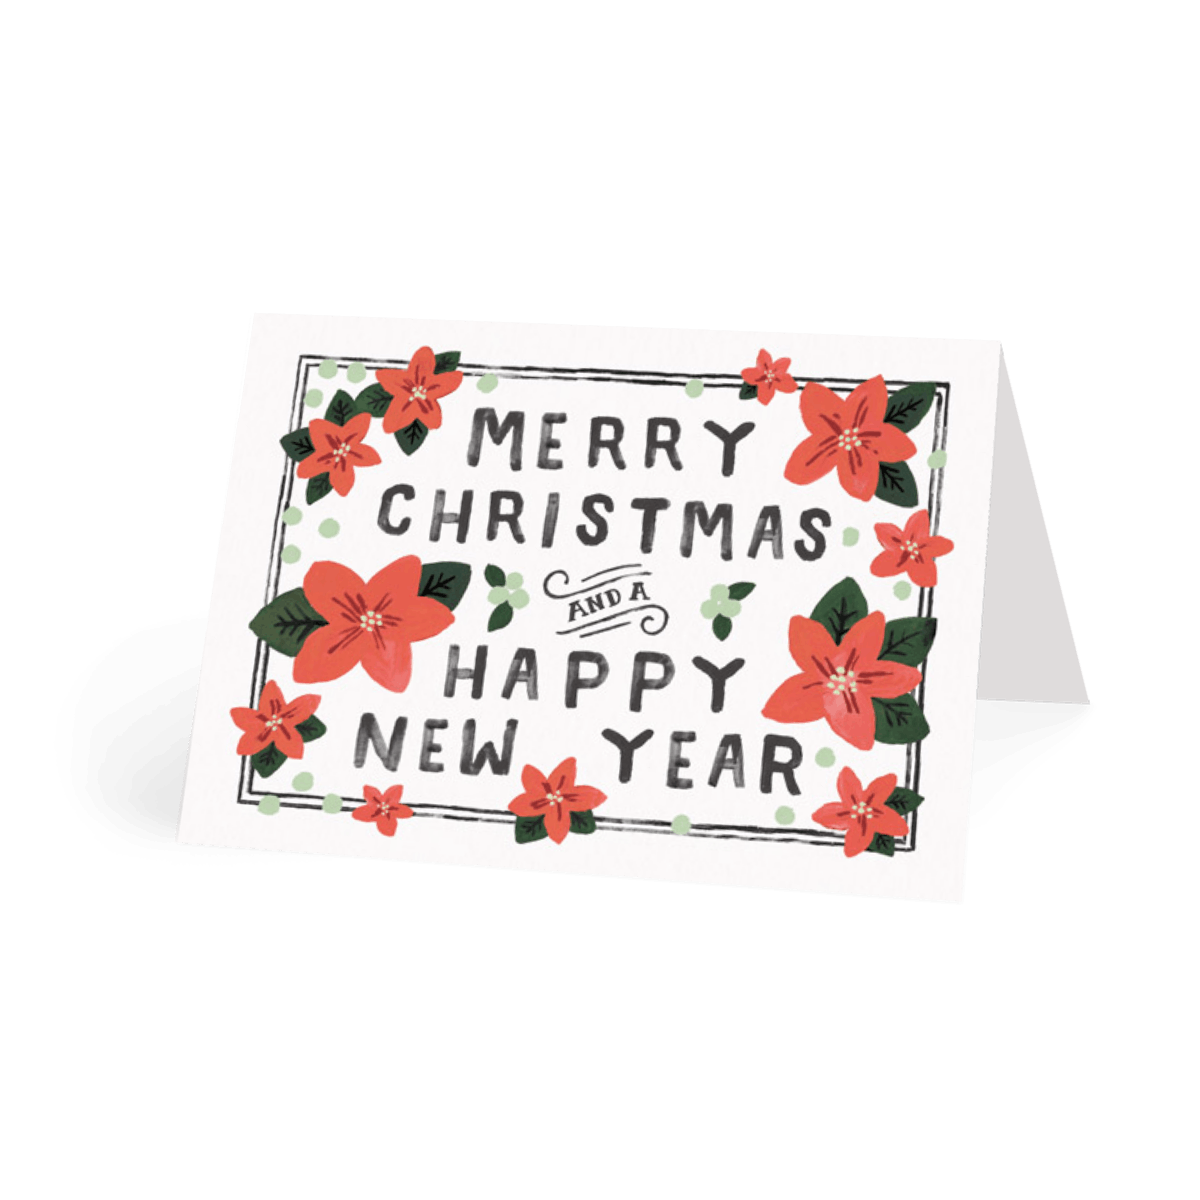 Https%3a%2f%2fwww.papier.com%2fproduct image%2f10494%2f14%2fchristmas poinsettia 2675 front 1570646493.png?ixlib=rb 1.1